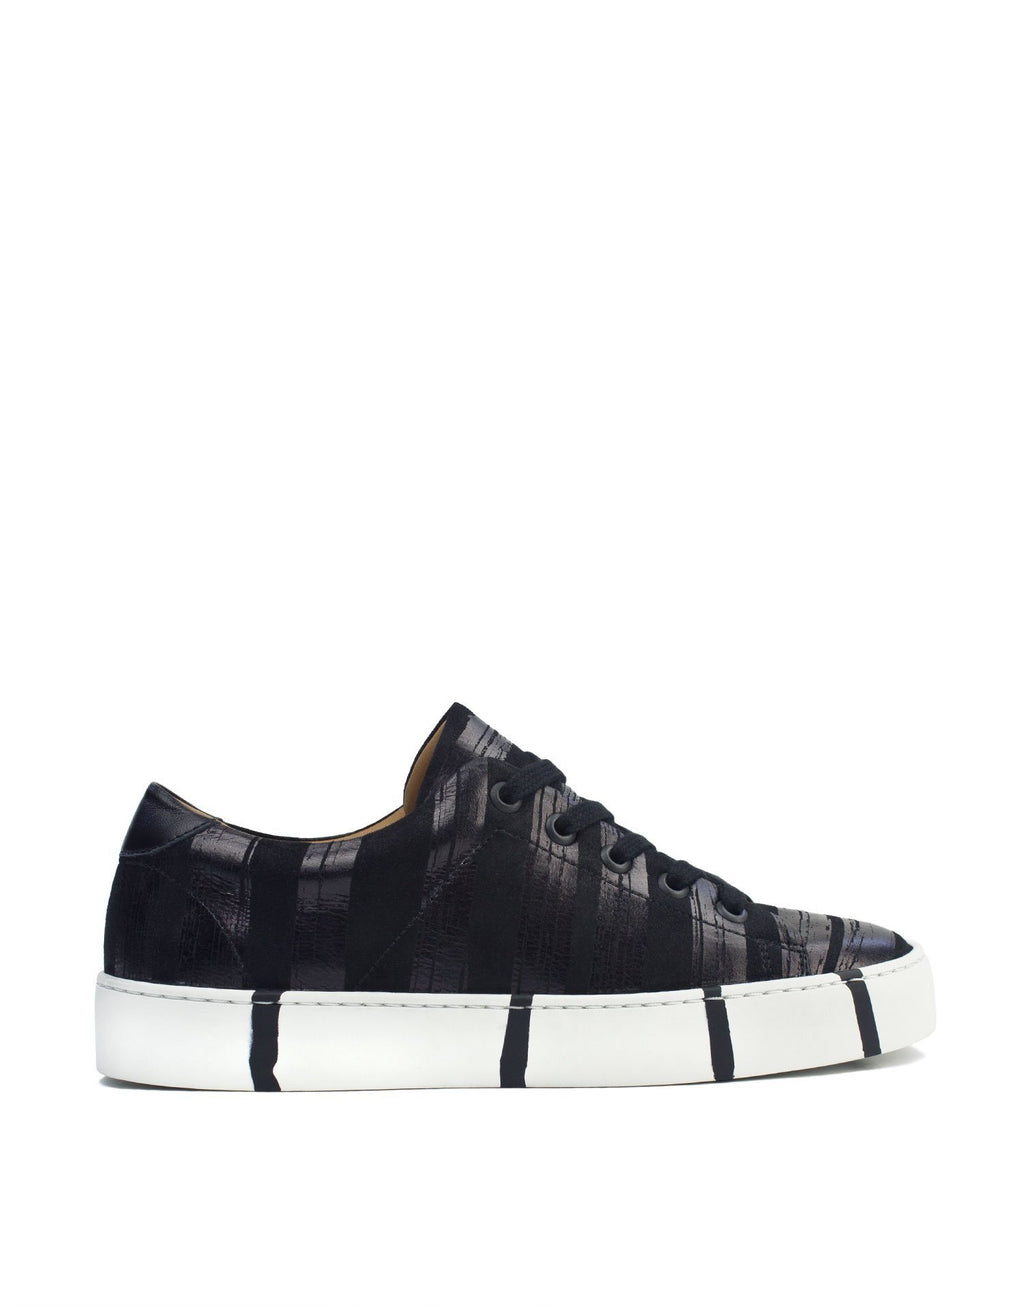 Black and black stripe low top sneaker by Georgina Goodman with signature striped soles